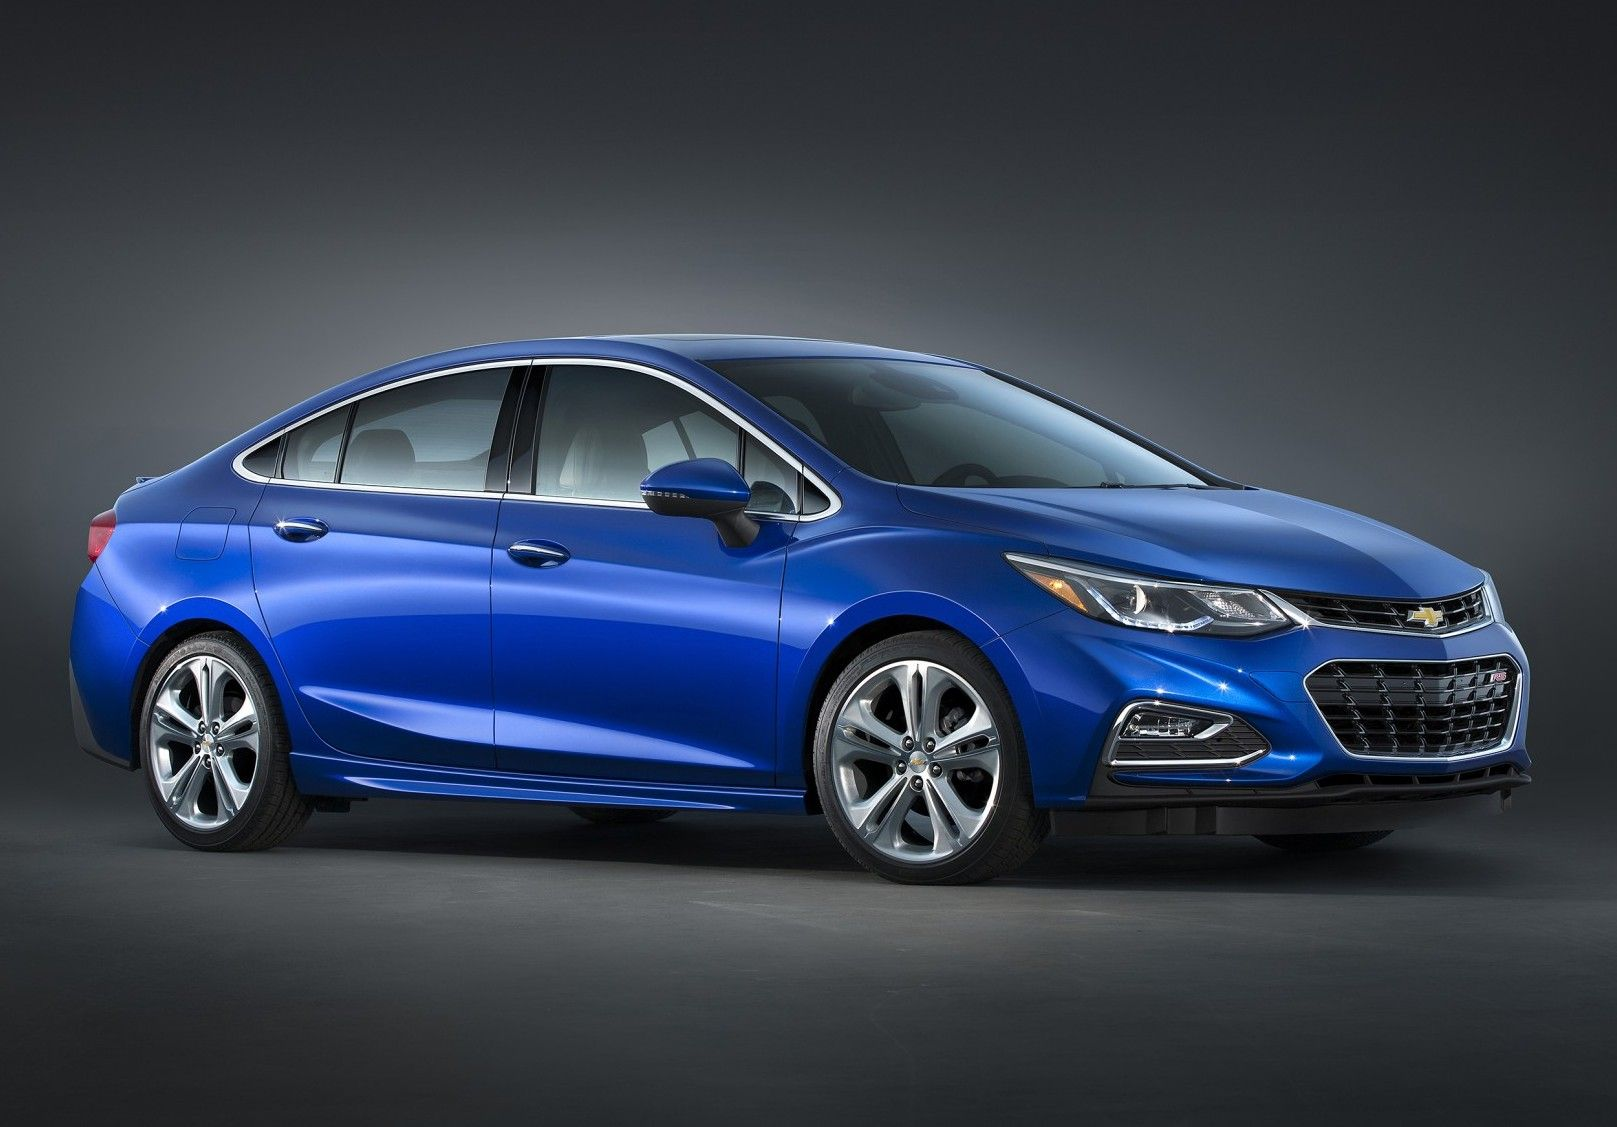 Upcoming Cars In India 2019 With Price Chevrolet Cruze Chevy